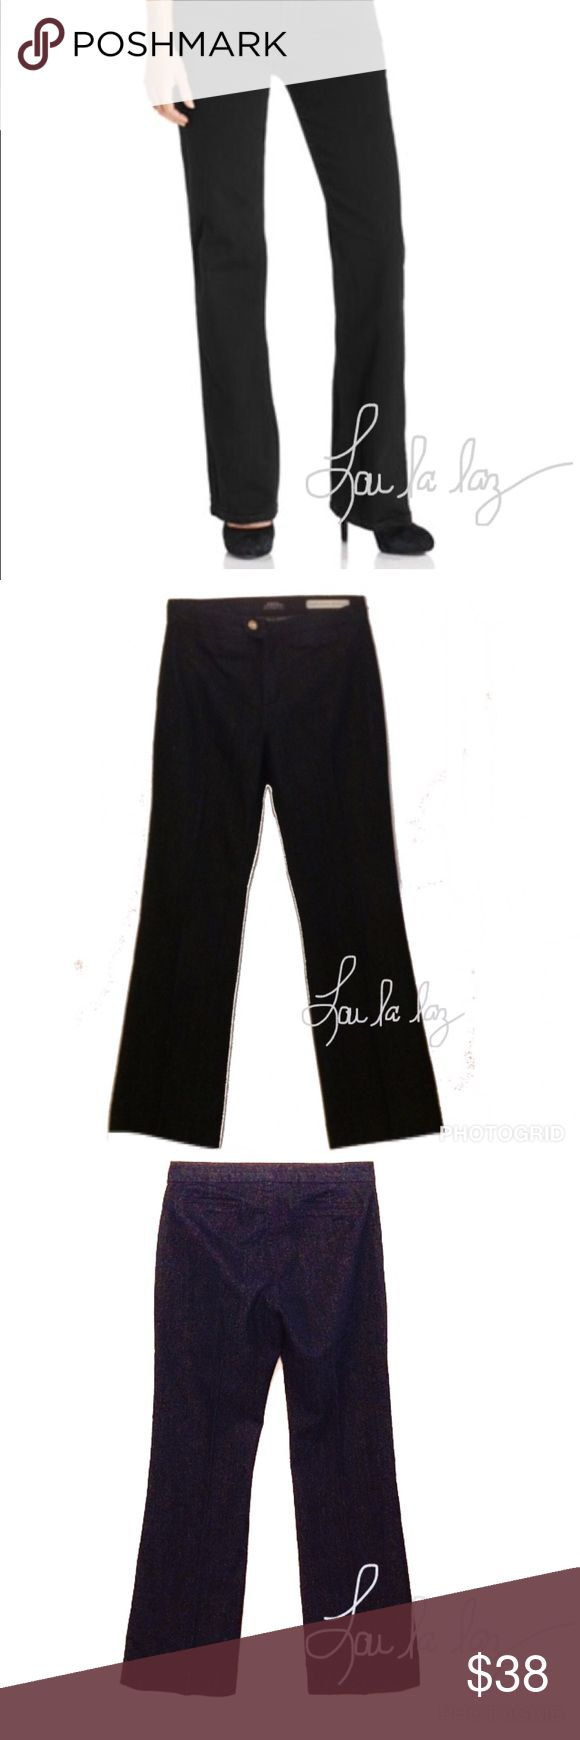 """NYDJ /Not Your Mothers Jeans Very nice trouser jeans! The sheen material makes them dressy enough for any occasion/ bootcut/size 8/32""""  inseam/new without tags $38 NYDJ Jeans Boot Cut"""